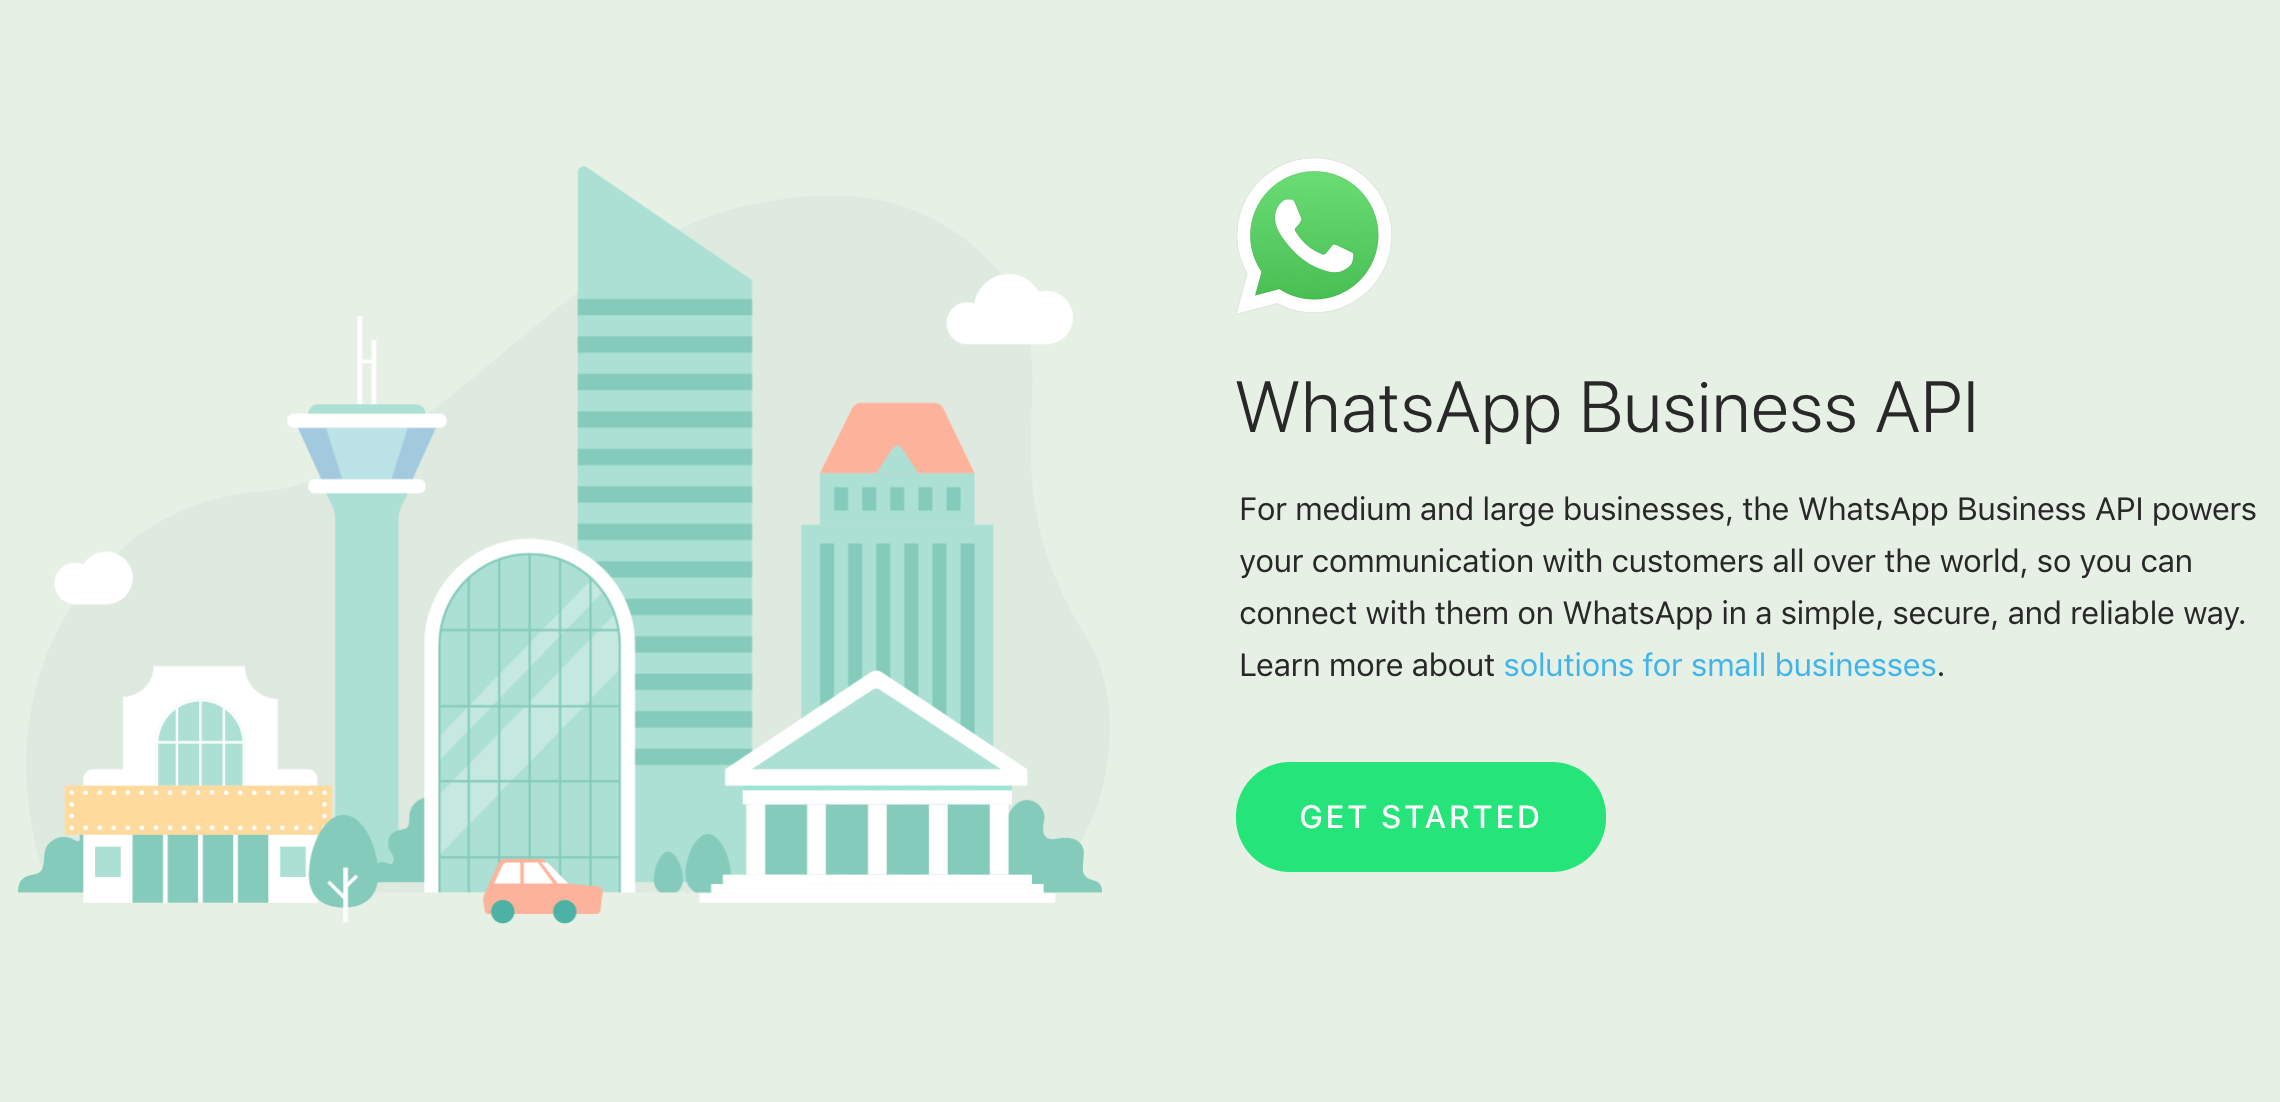 WhatsApp announces the roll out of WhatsApp Business API